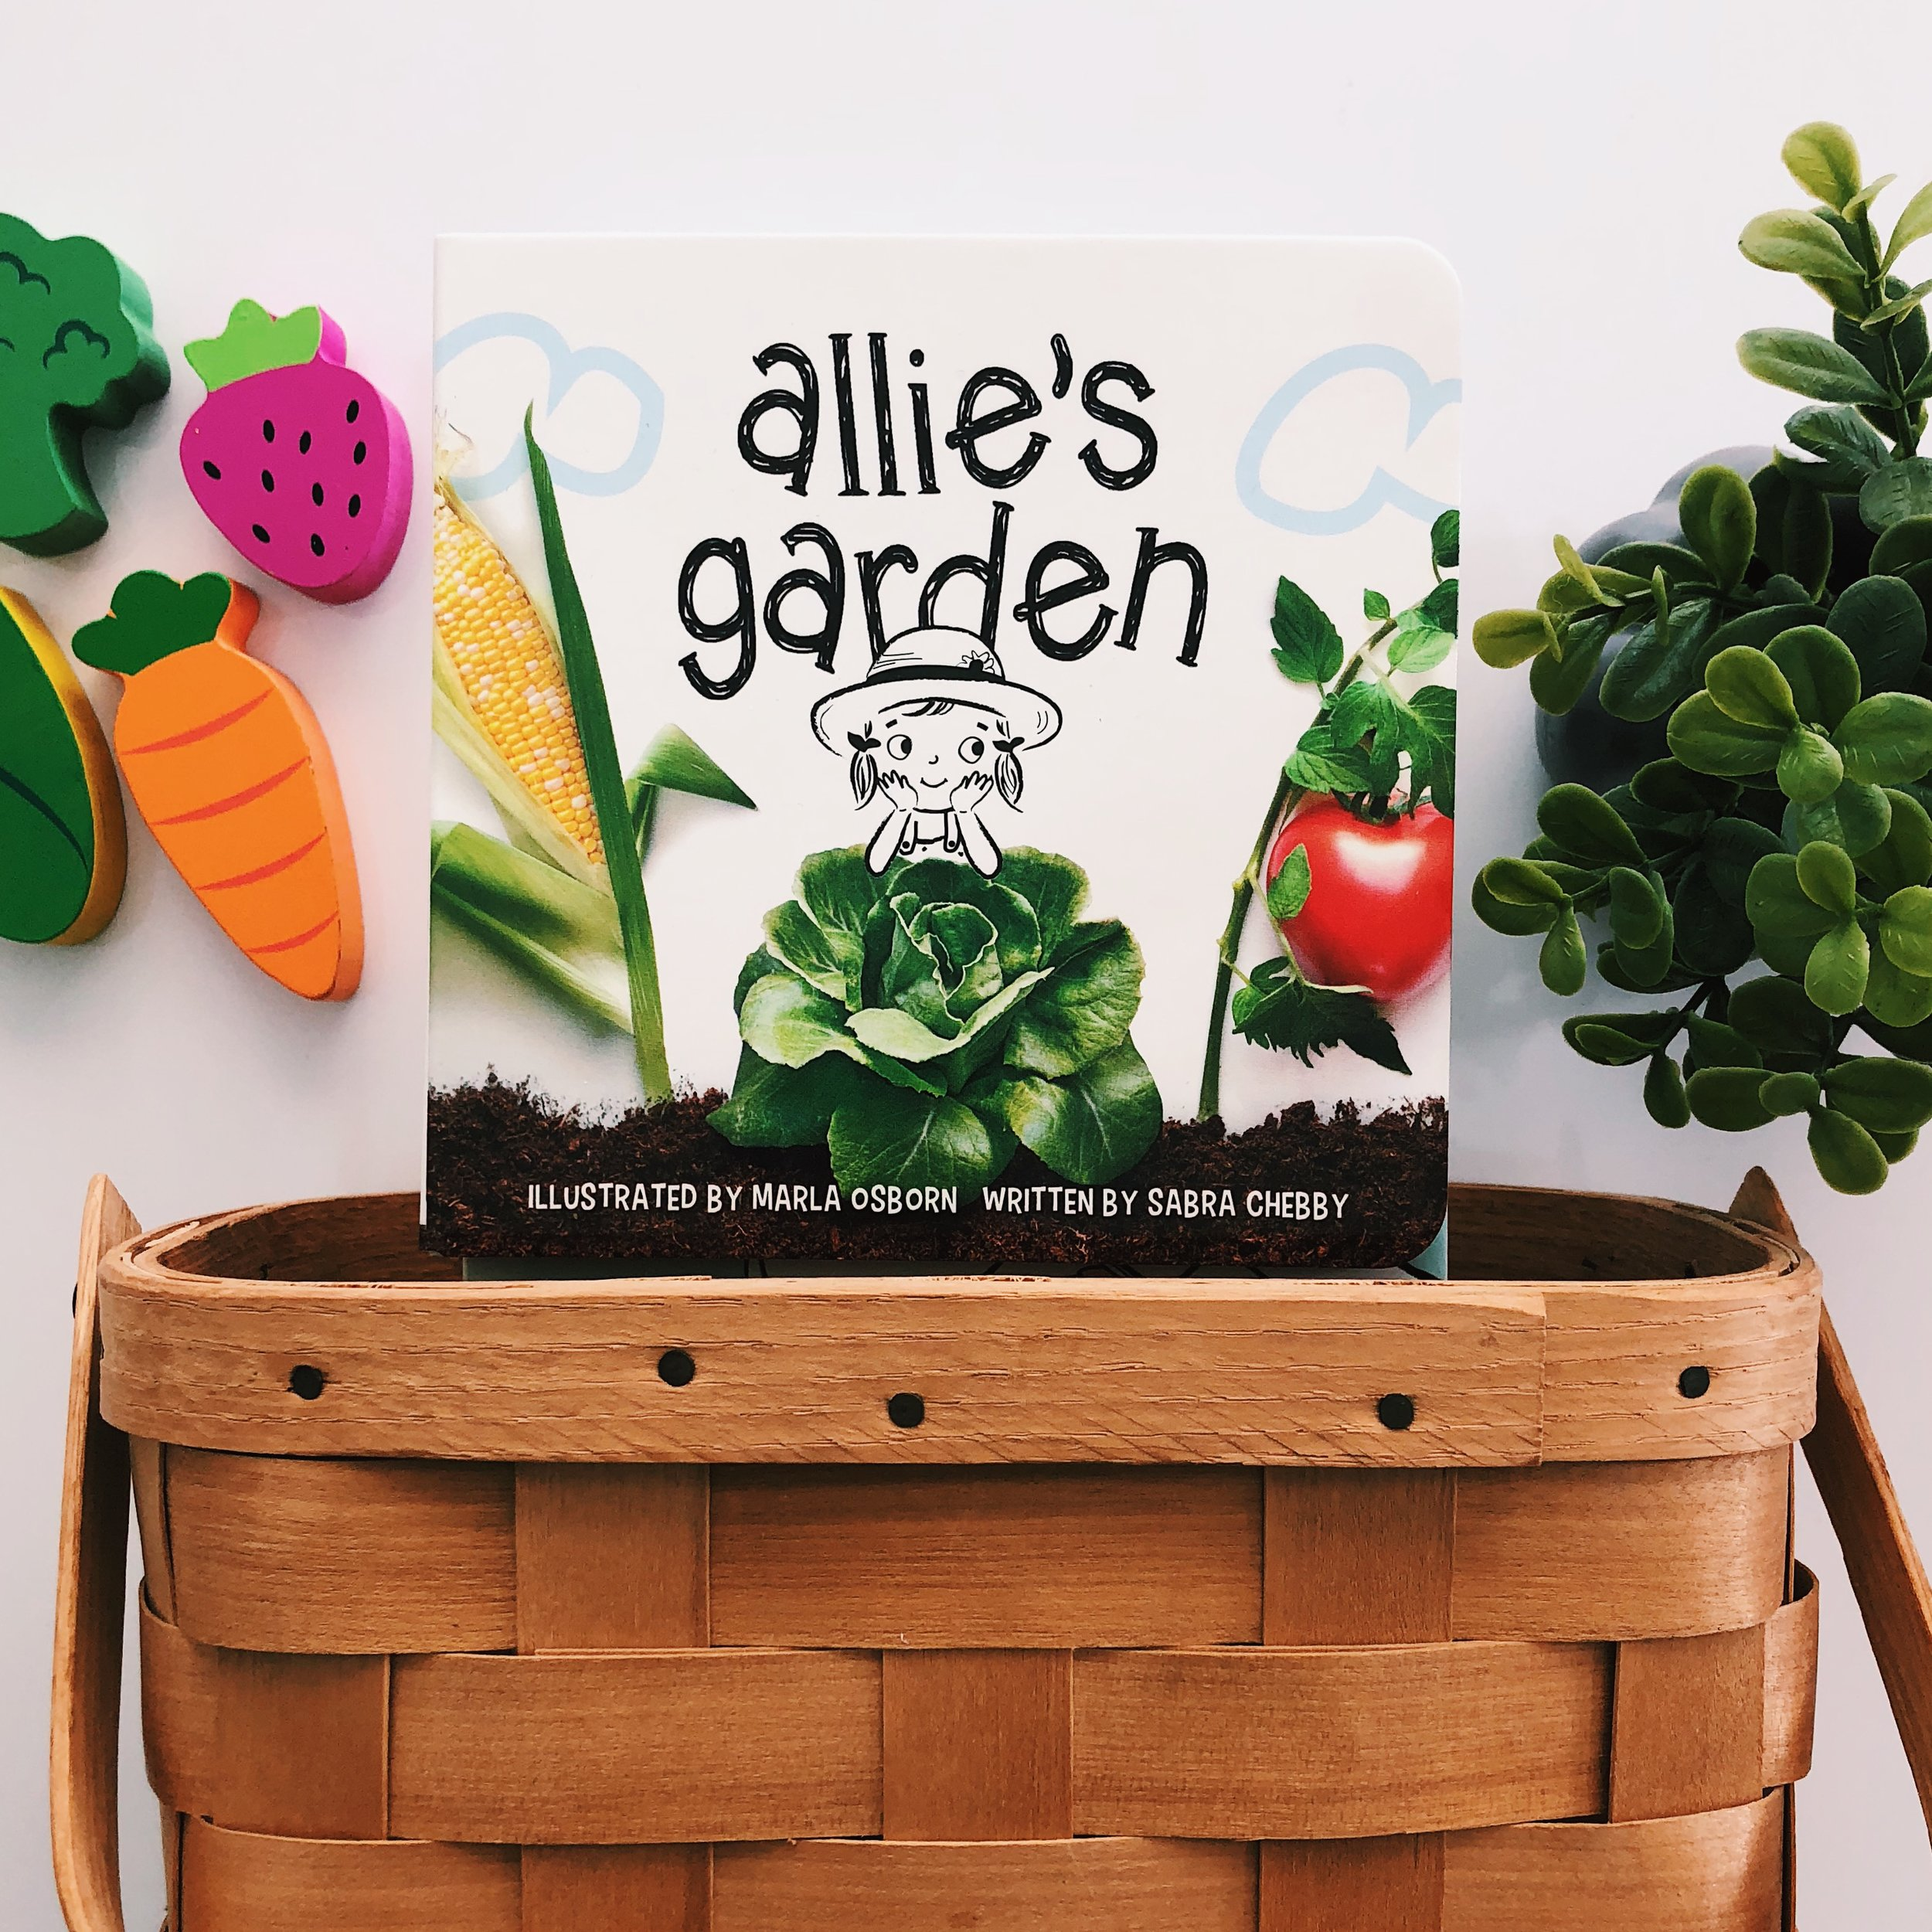 Allie's Garden  , written by Sabra Chebby and illustrated by Marla Osborn